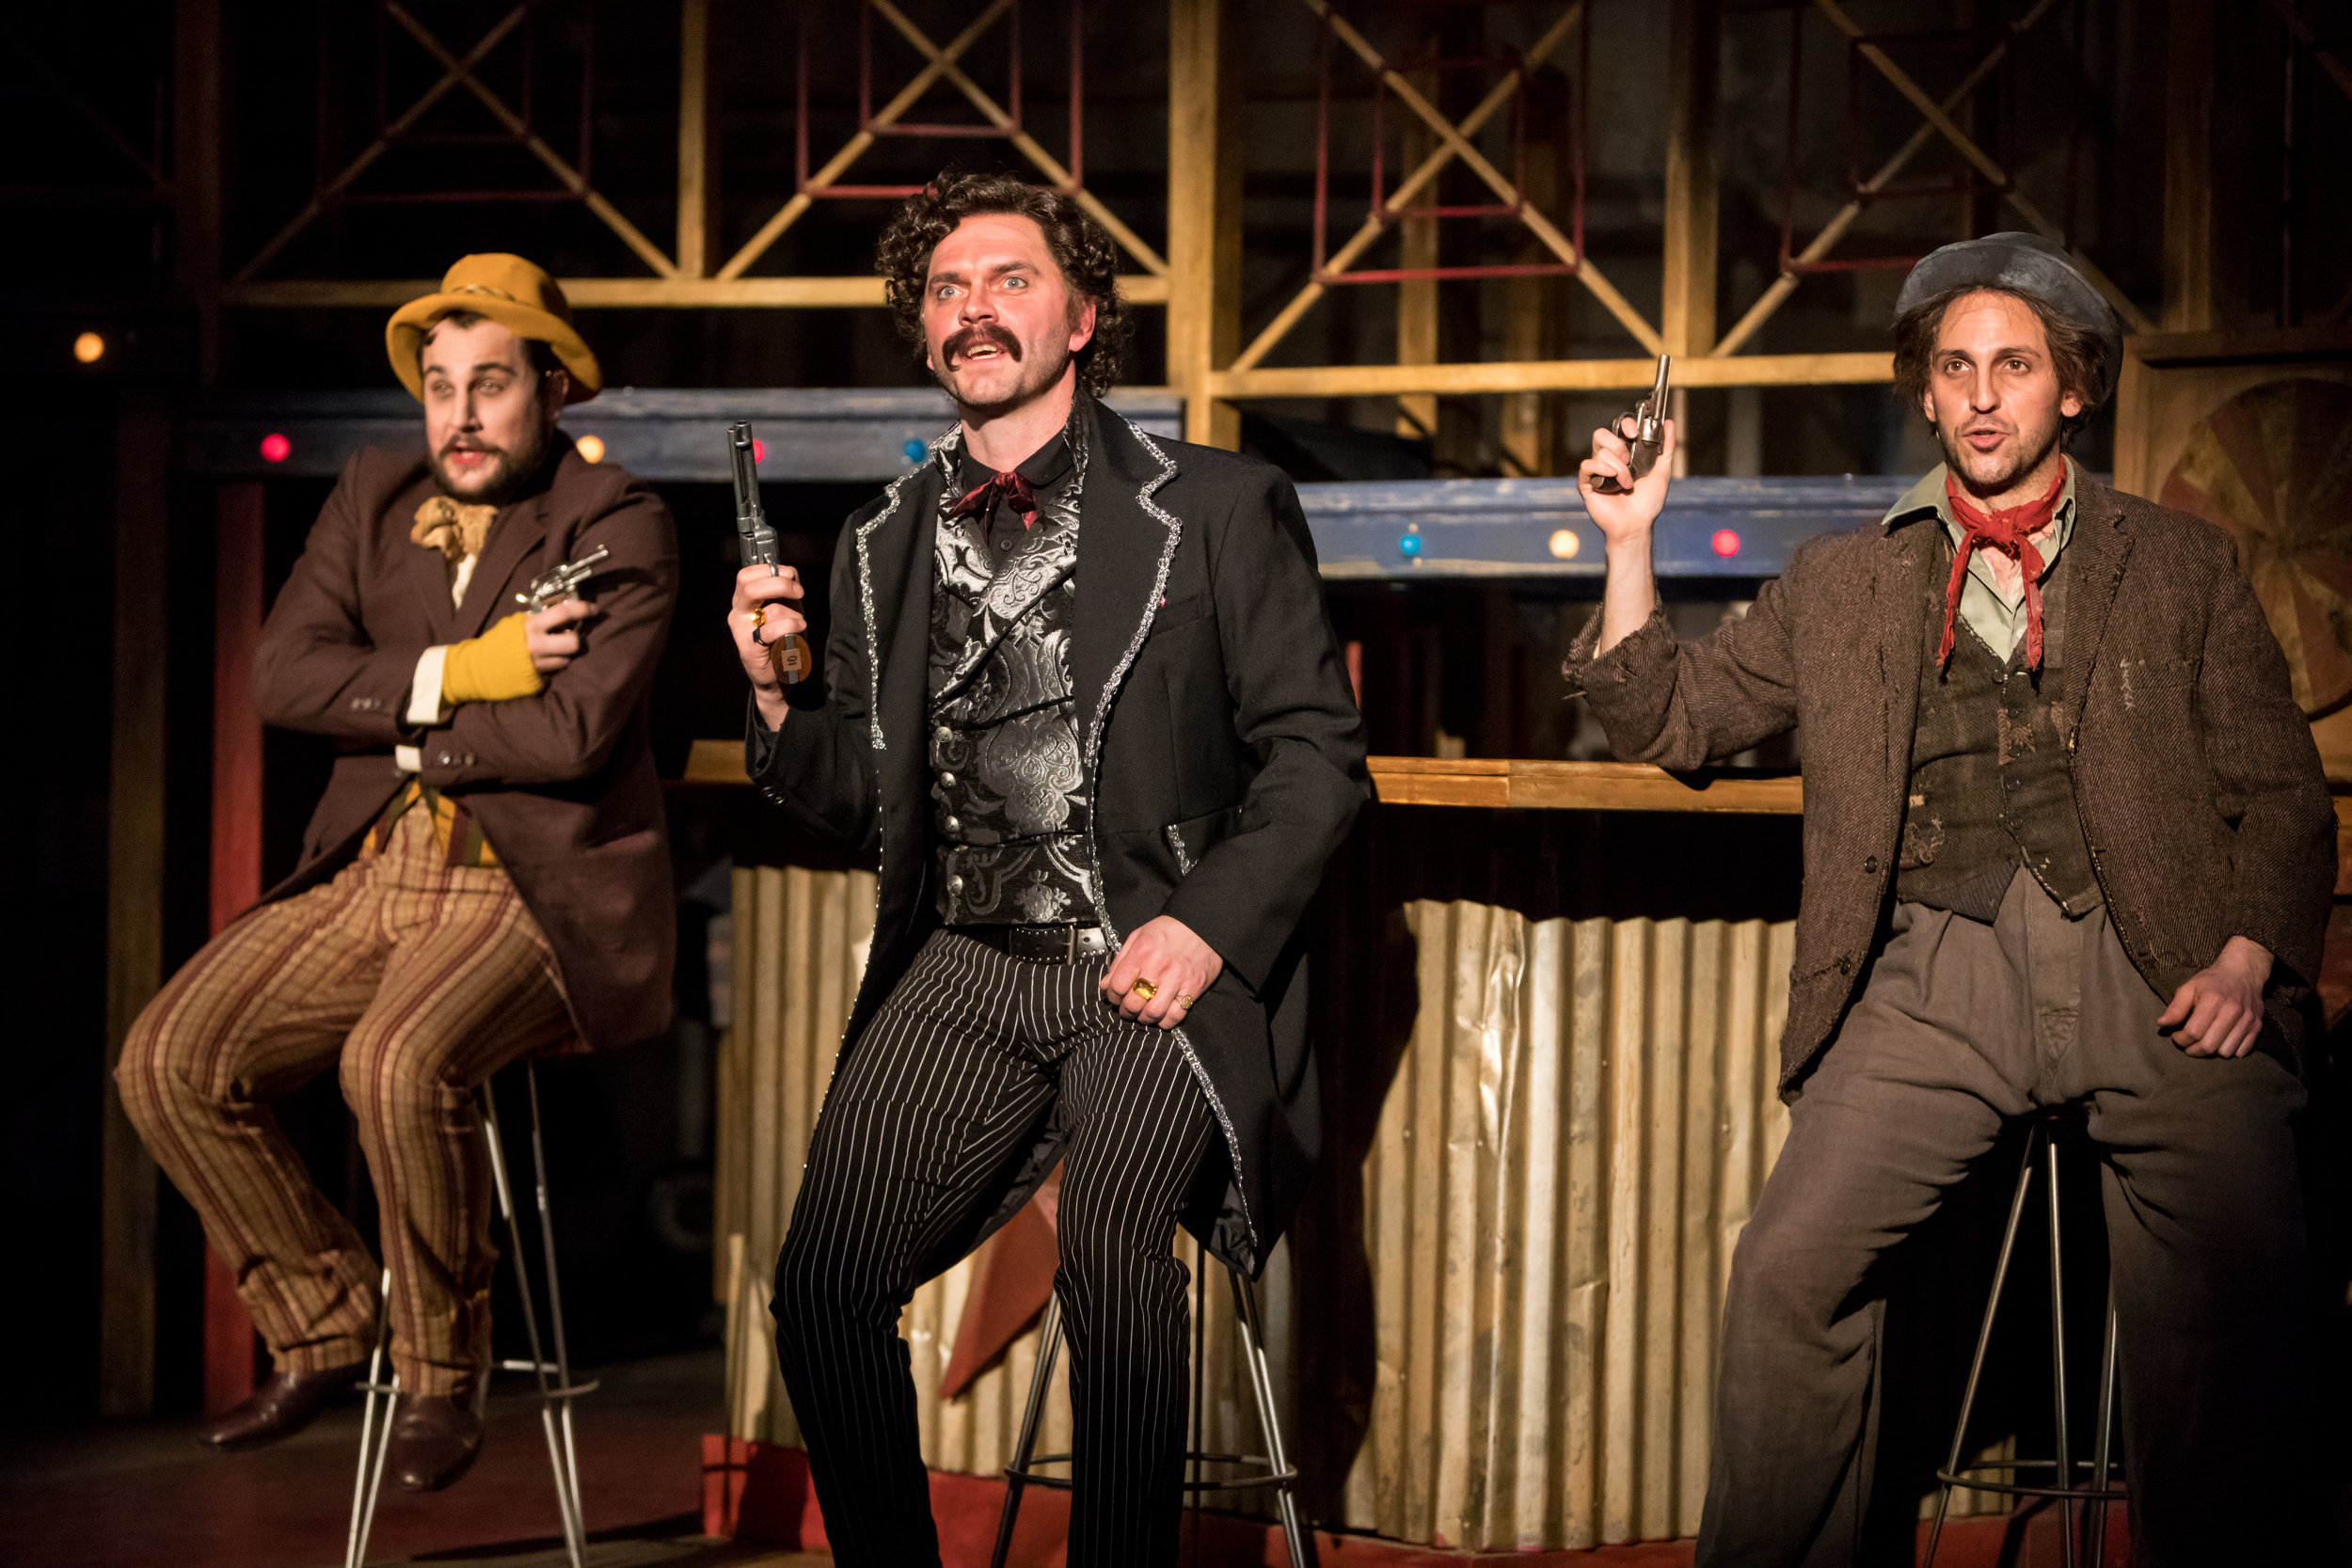 Benjamin Dutcher (Guiteau), Dieter Bierbrauer (Booth), and Rodolfo Nieto (Czolcosz), Photo credit Dan Norman